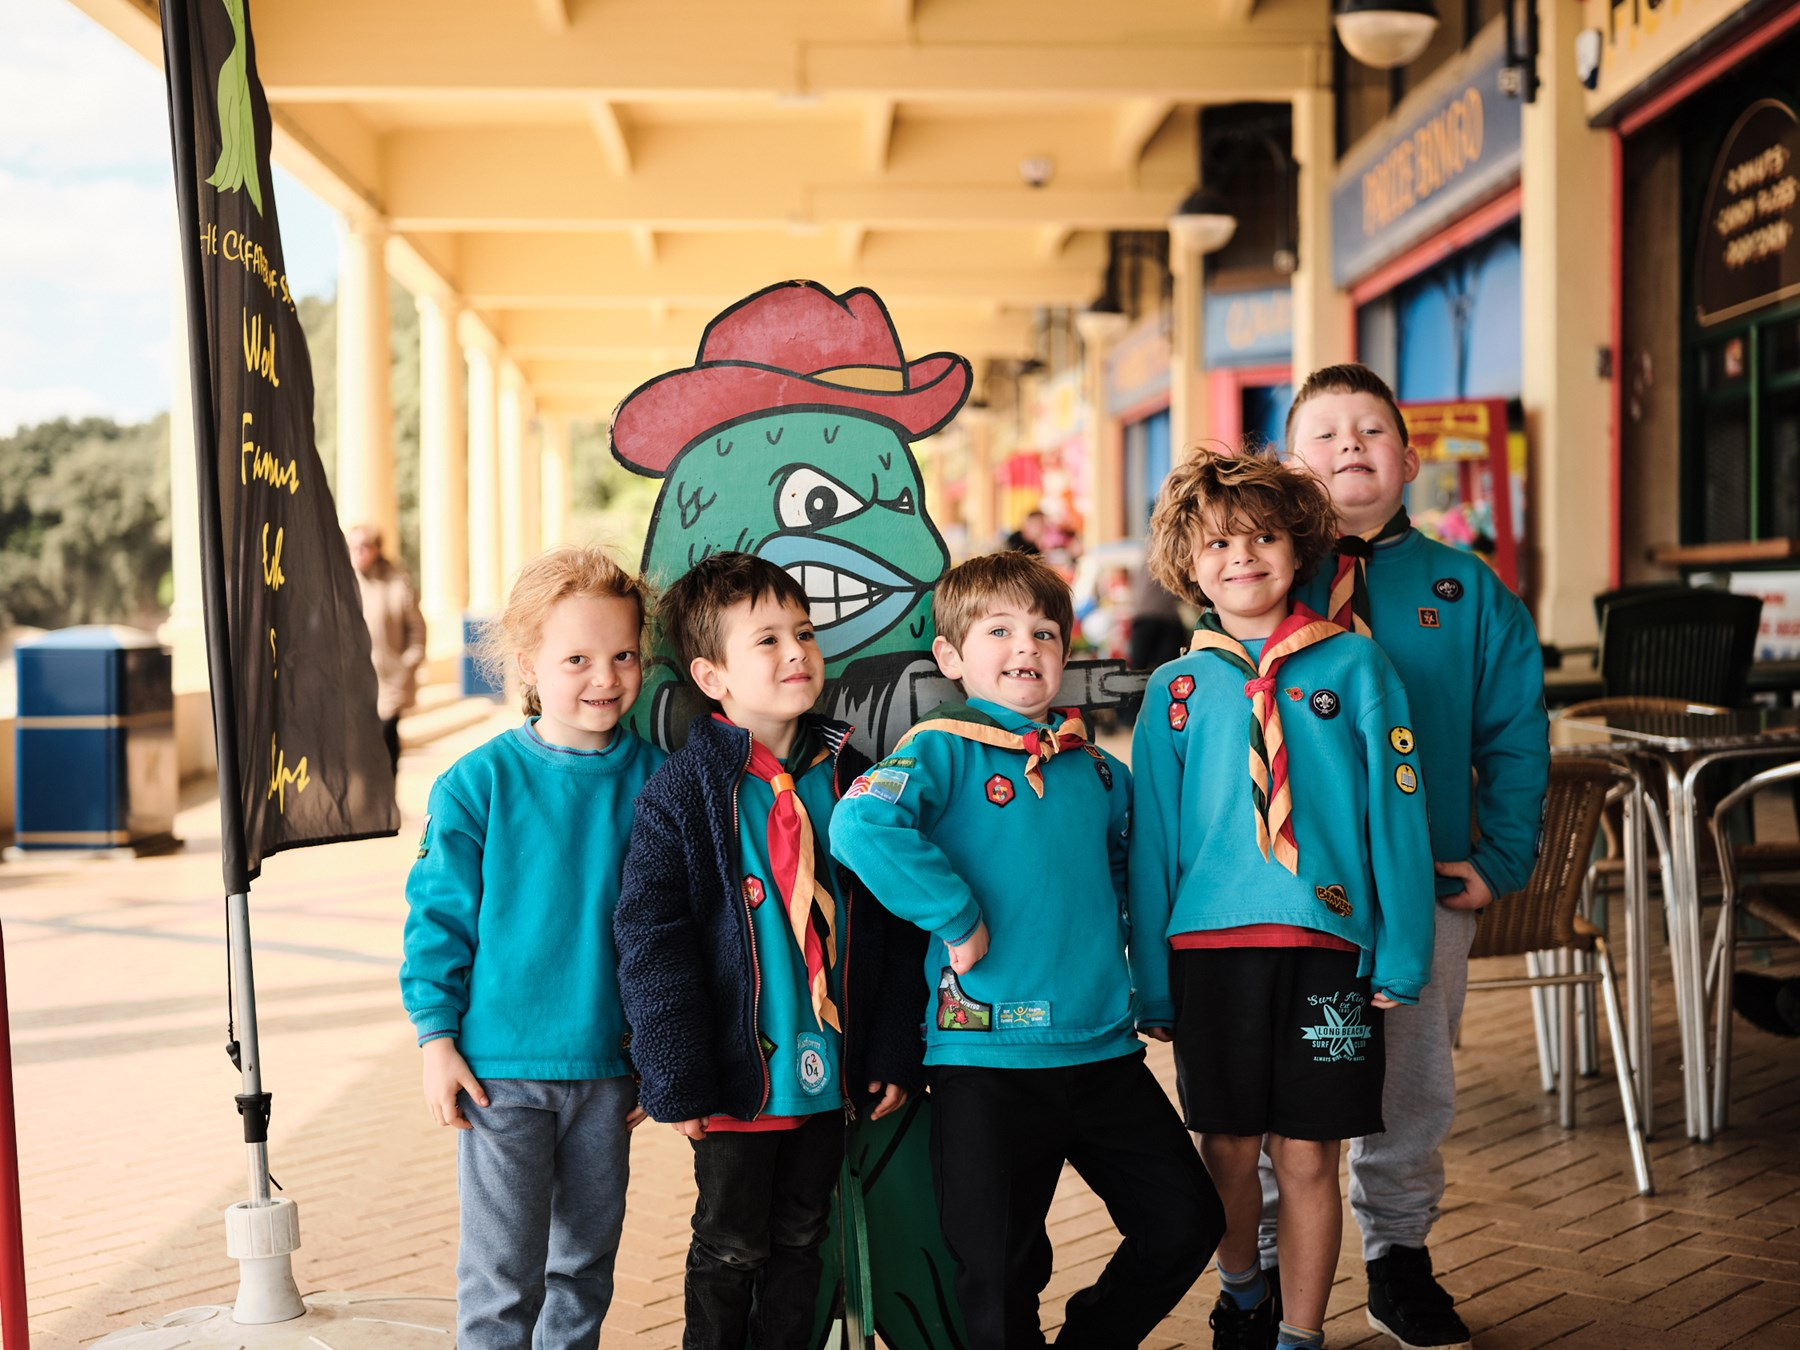 Five Beavers pose with a chip shop mascot for a photo. They're smiling and pulling silly faces at the camera.